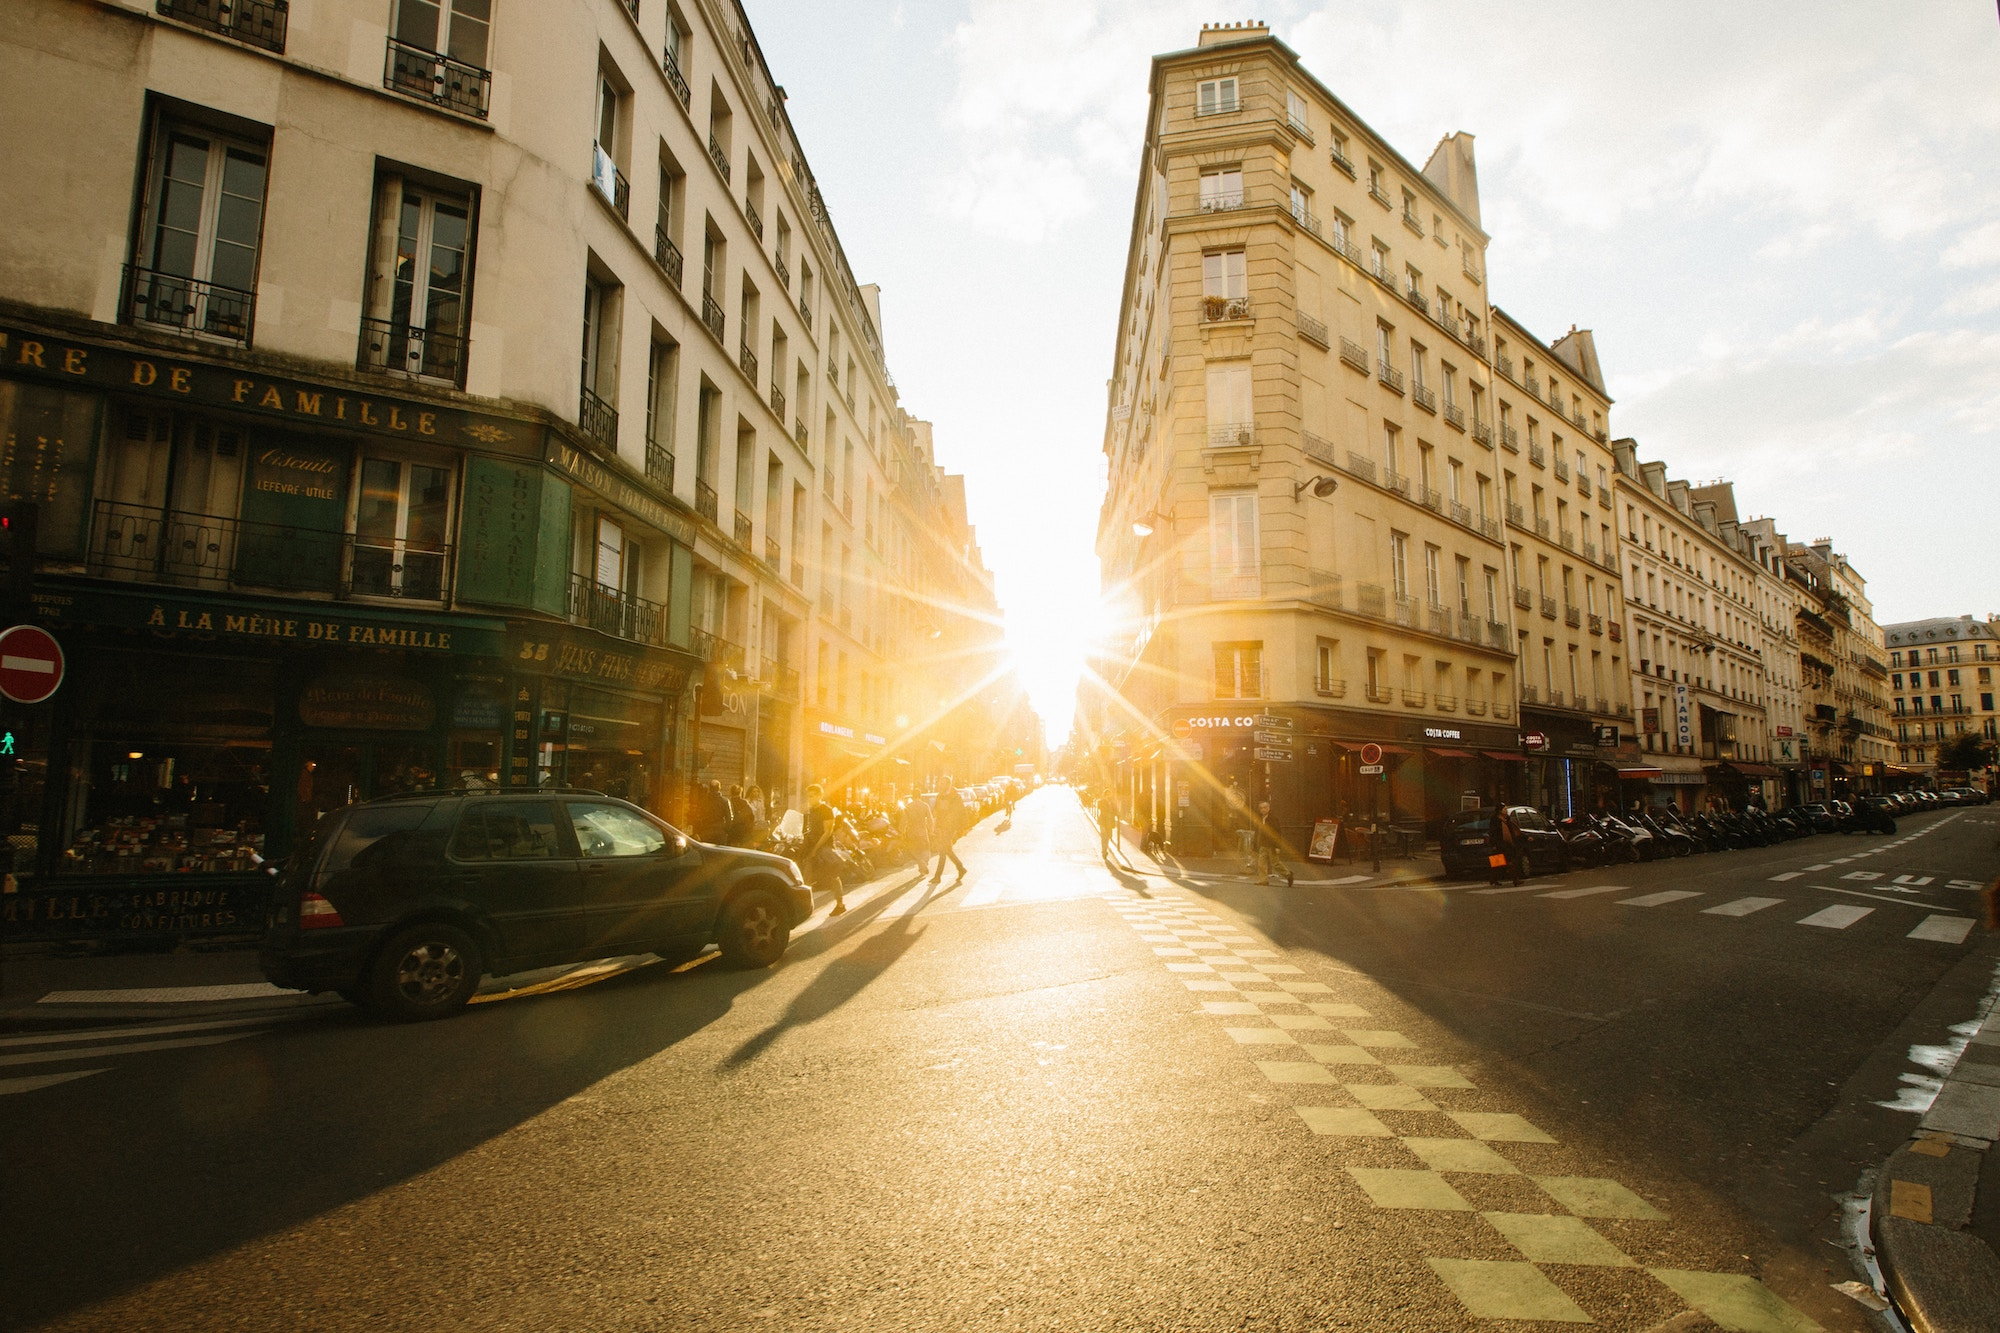 Paris podcast host Oliver Gee's tips on how to see Paris.